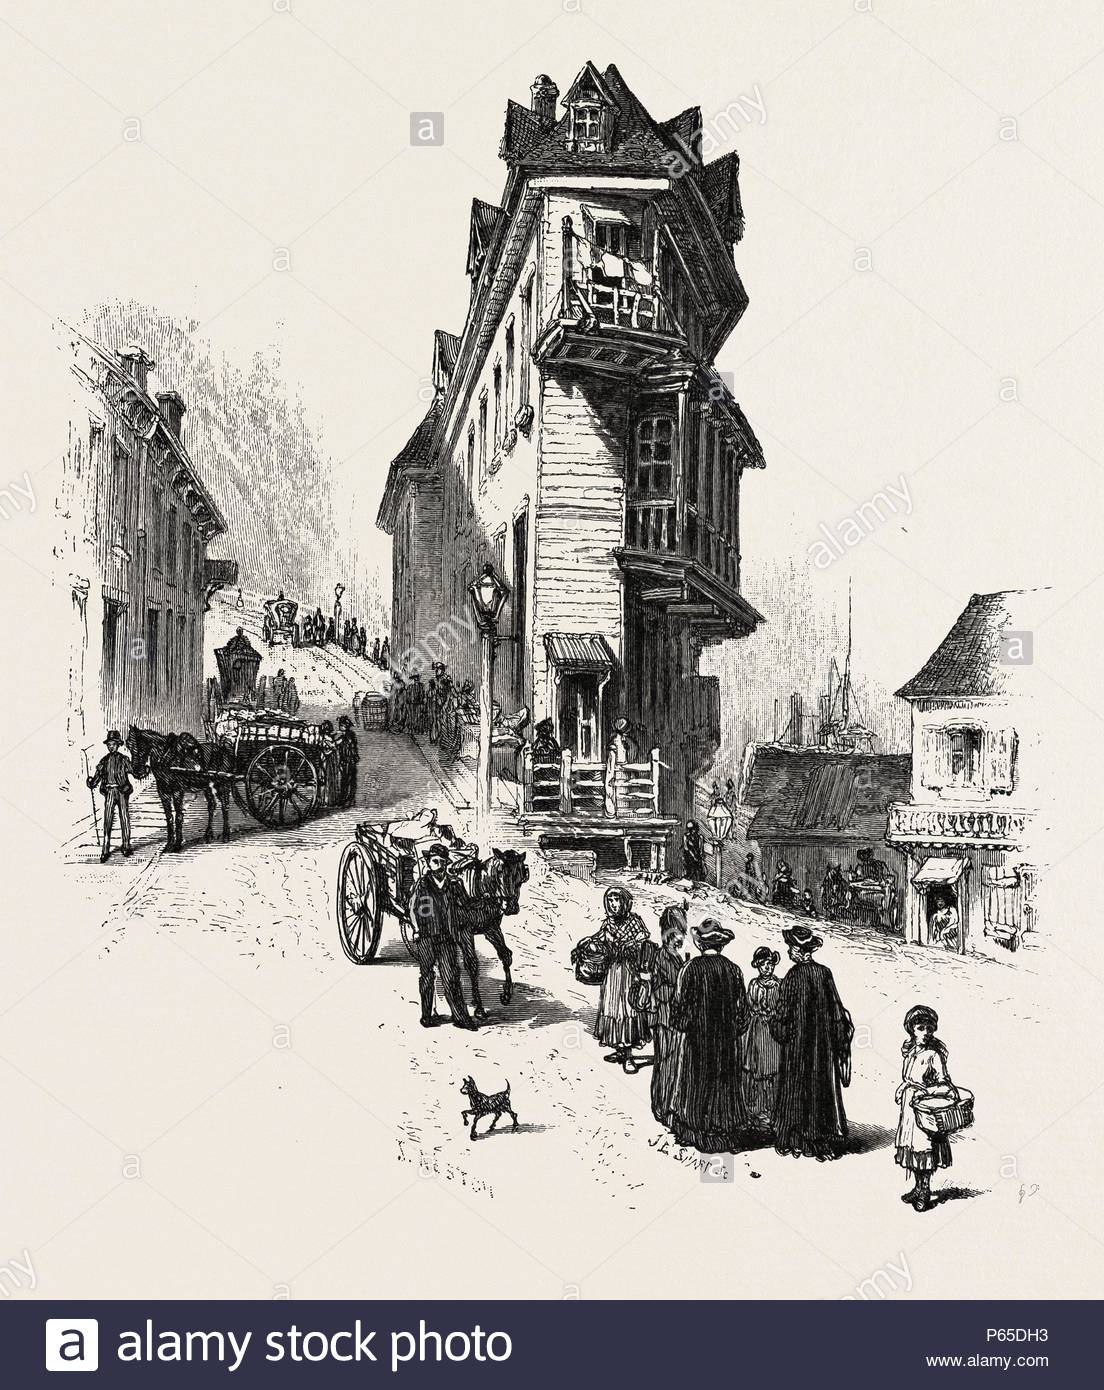 French canadian life old houses at point levis canada nineteenth century engraving